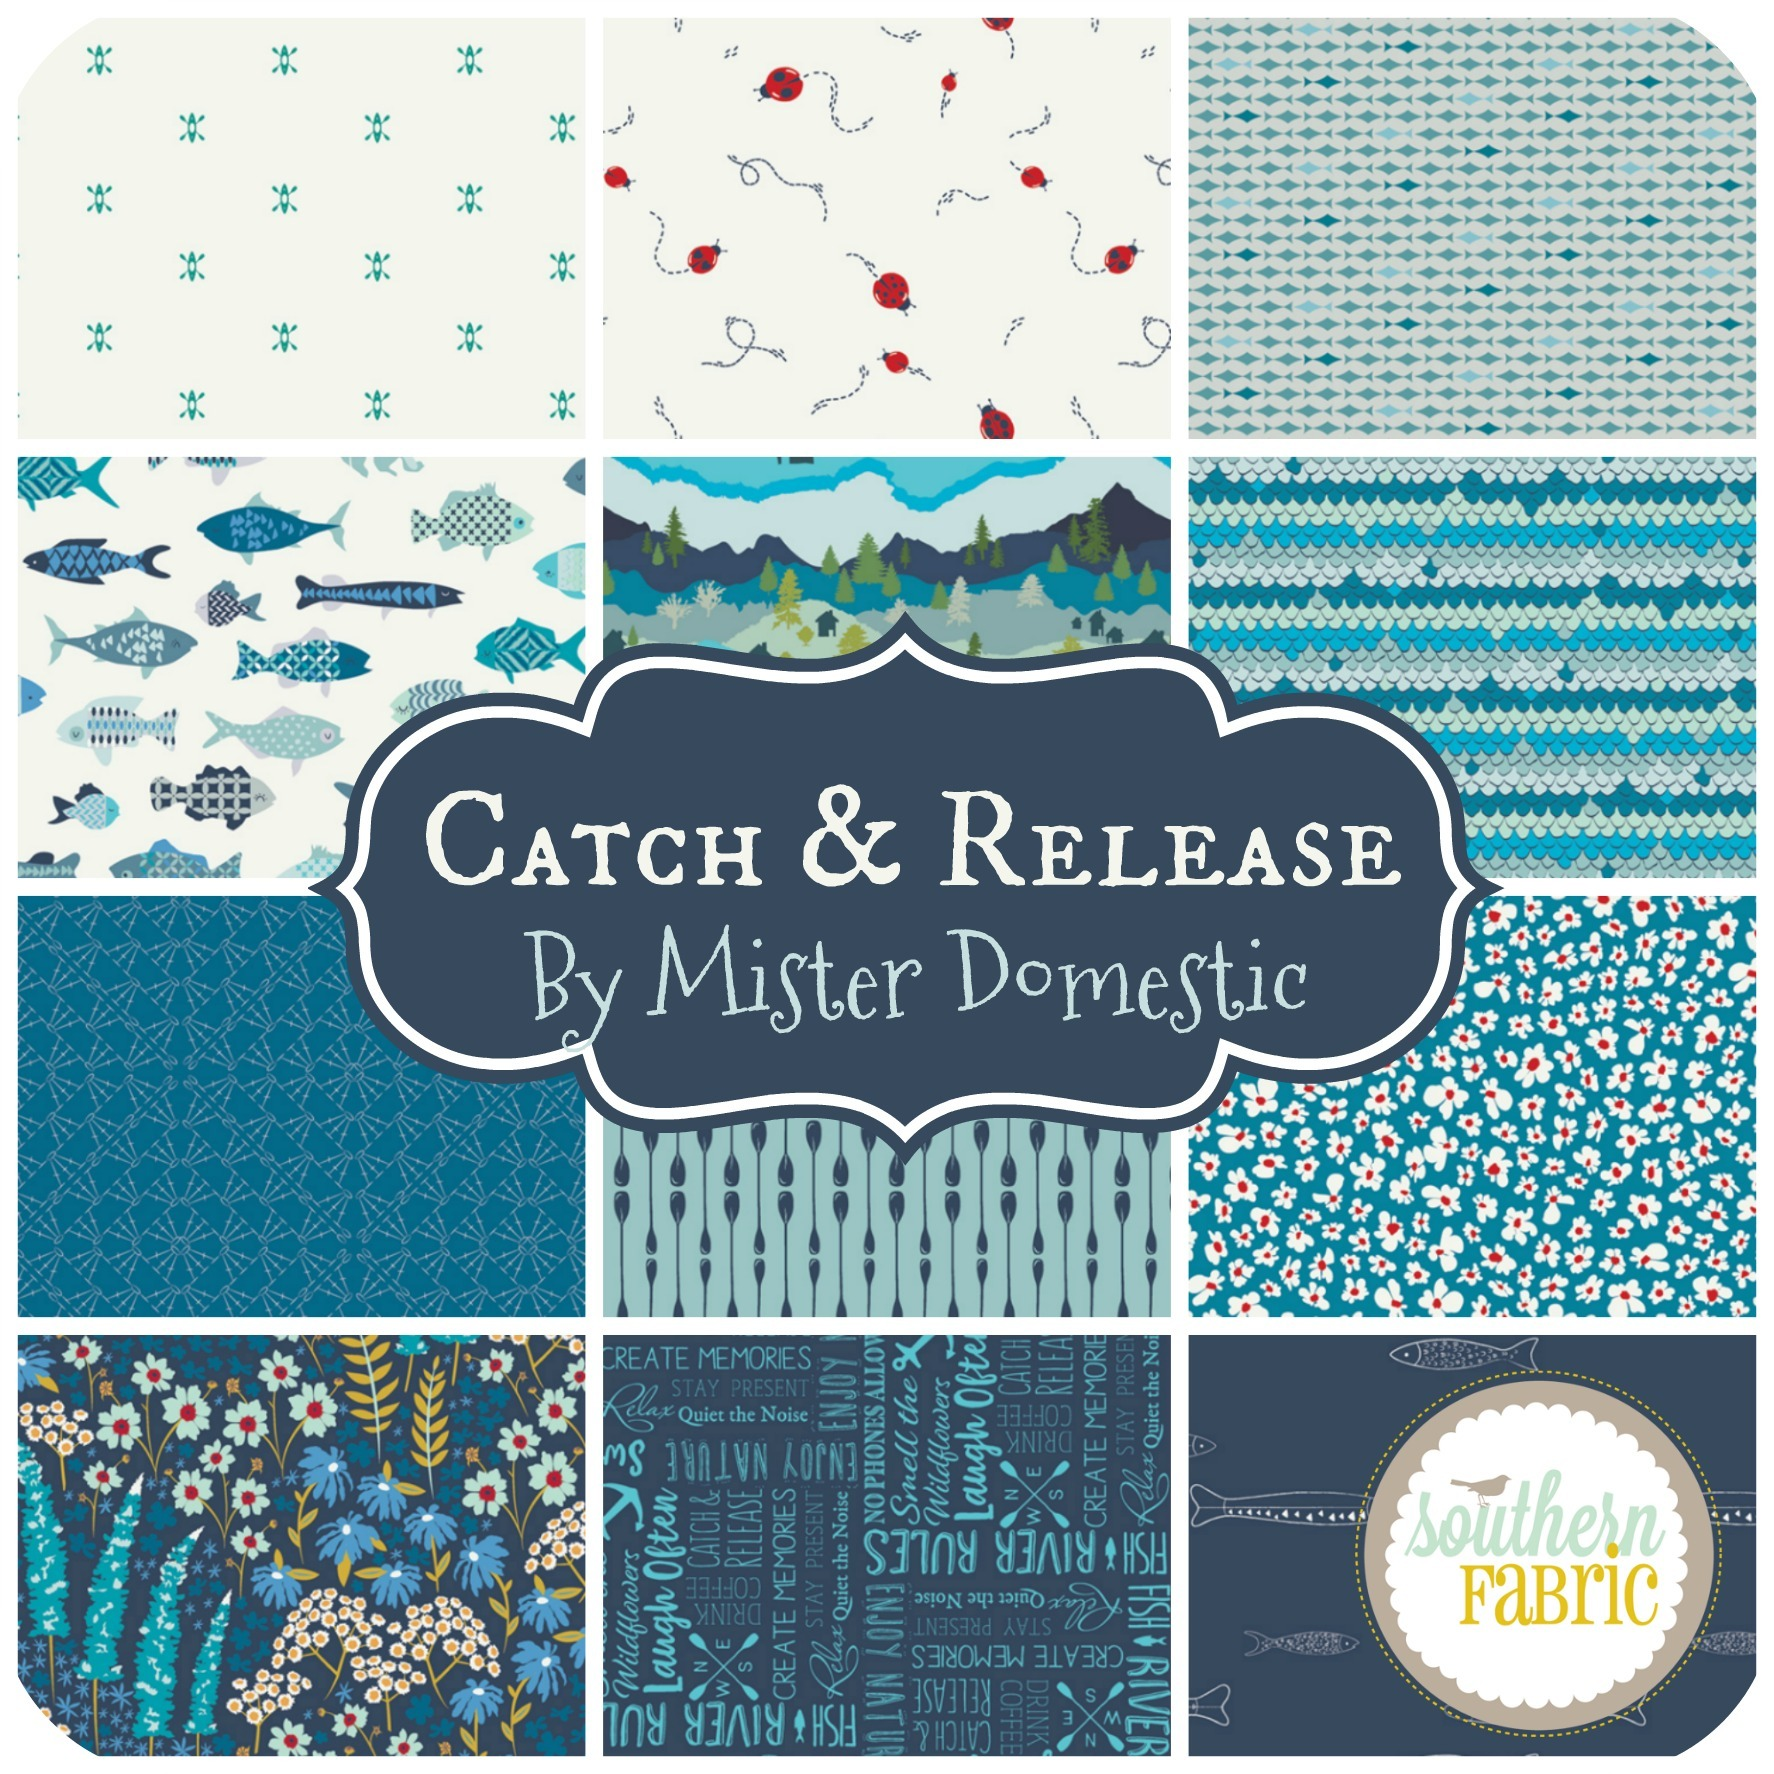 Catch and Release by Mister Domestic